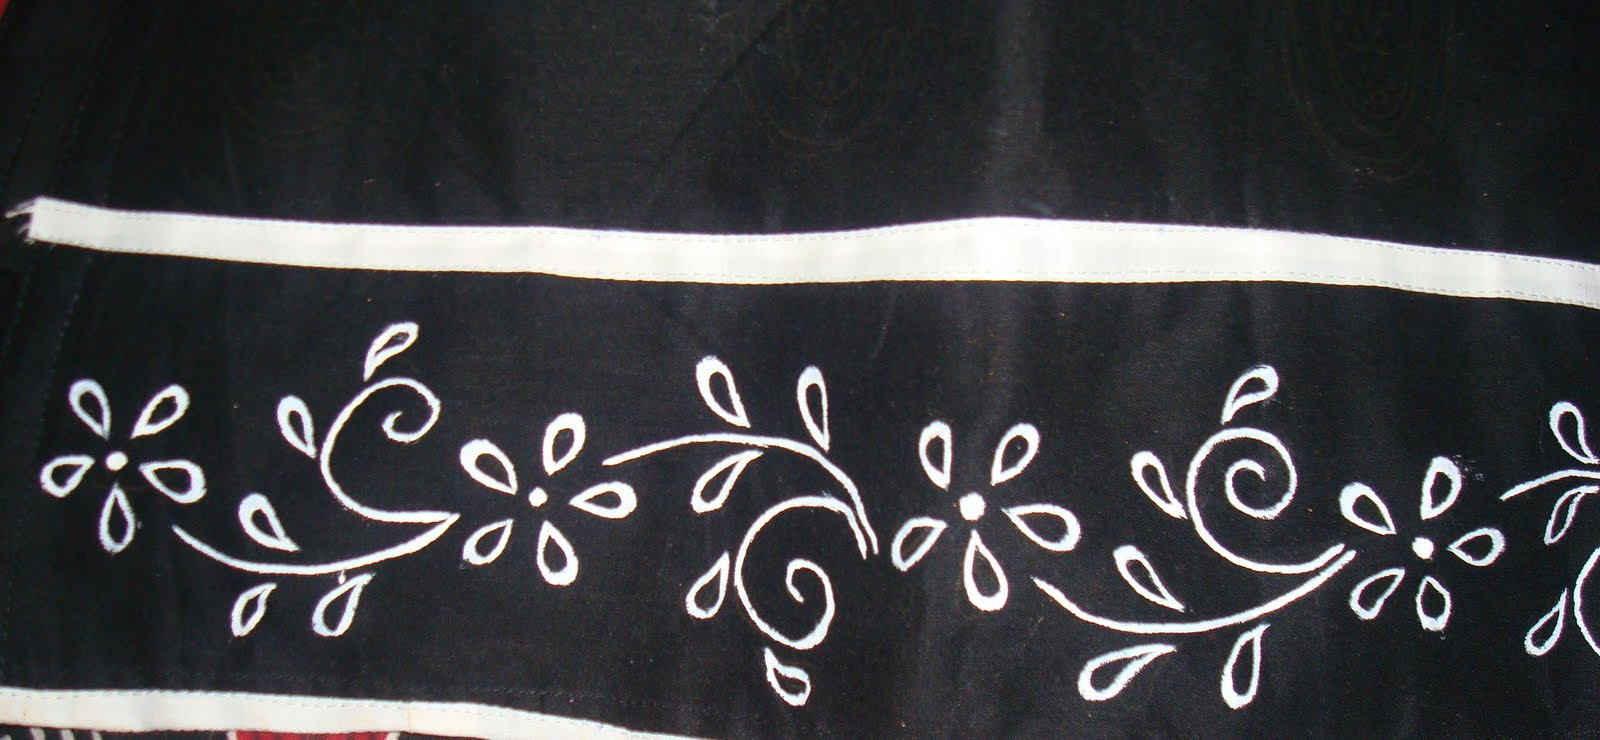 Its a simple border with flowers and leaves